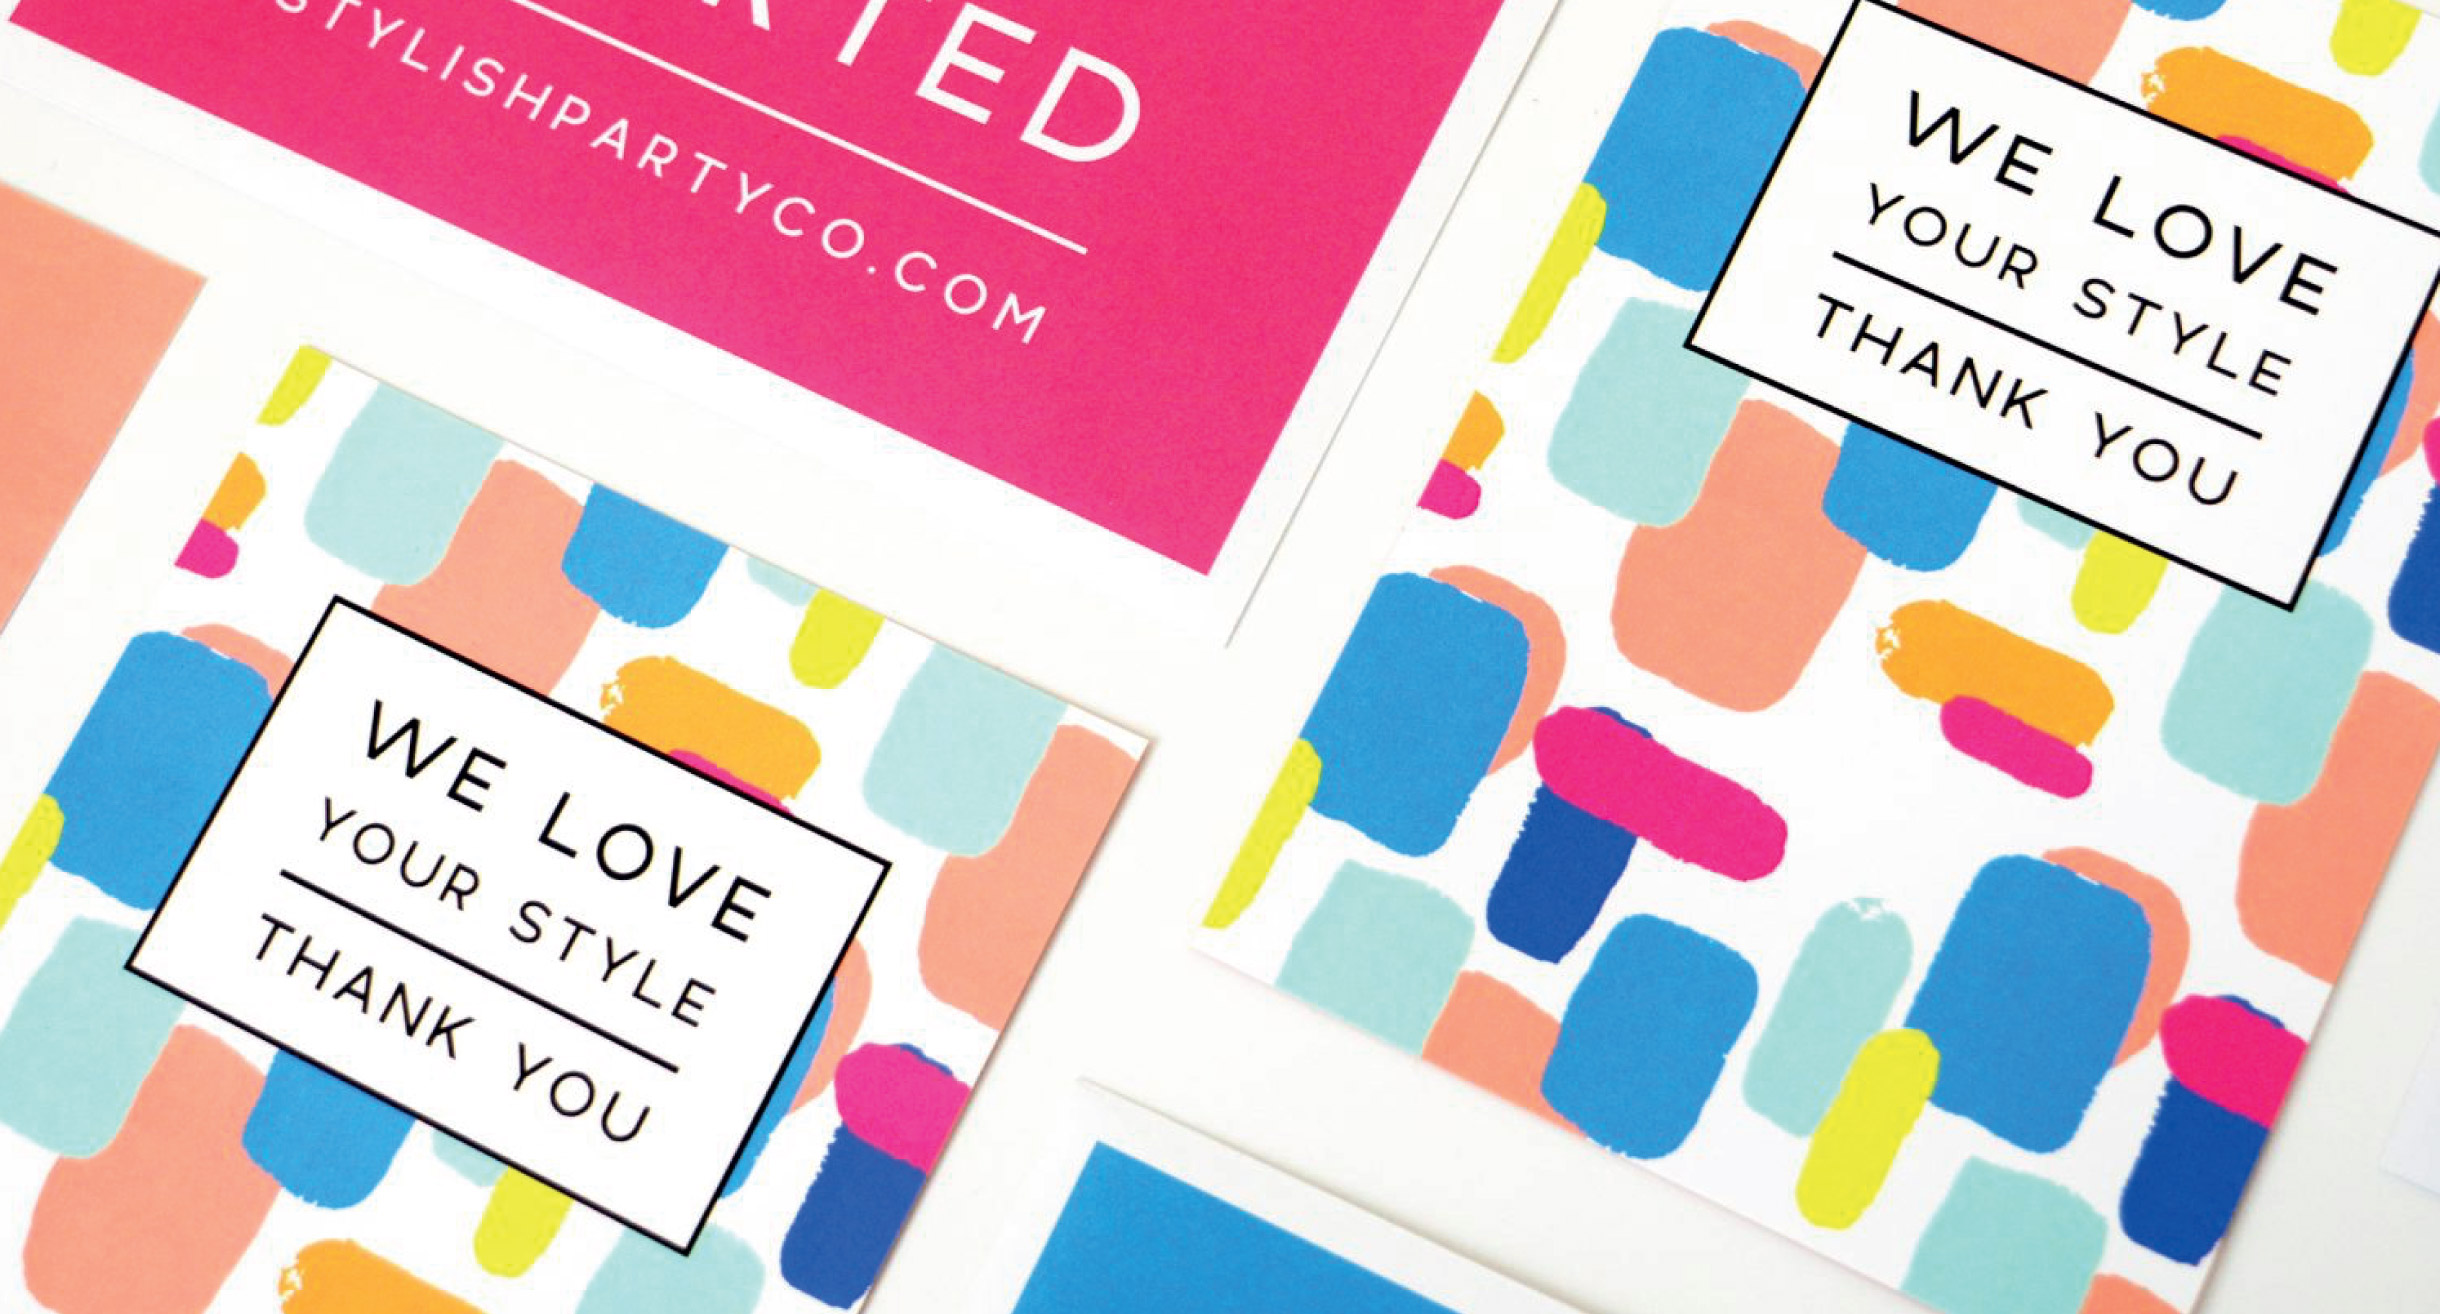 Quints Design co - Stylish Party co Branded Stationery